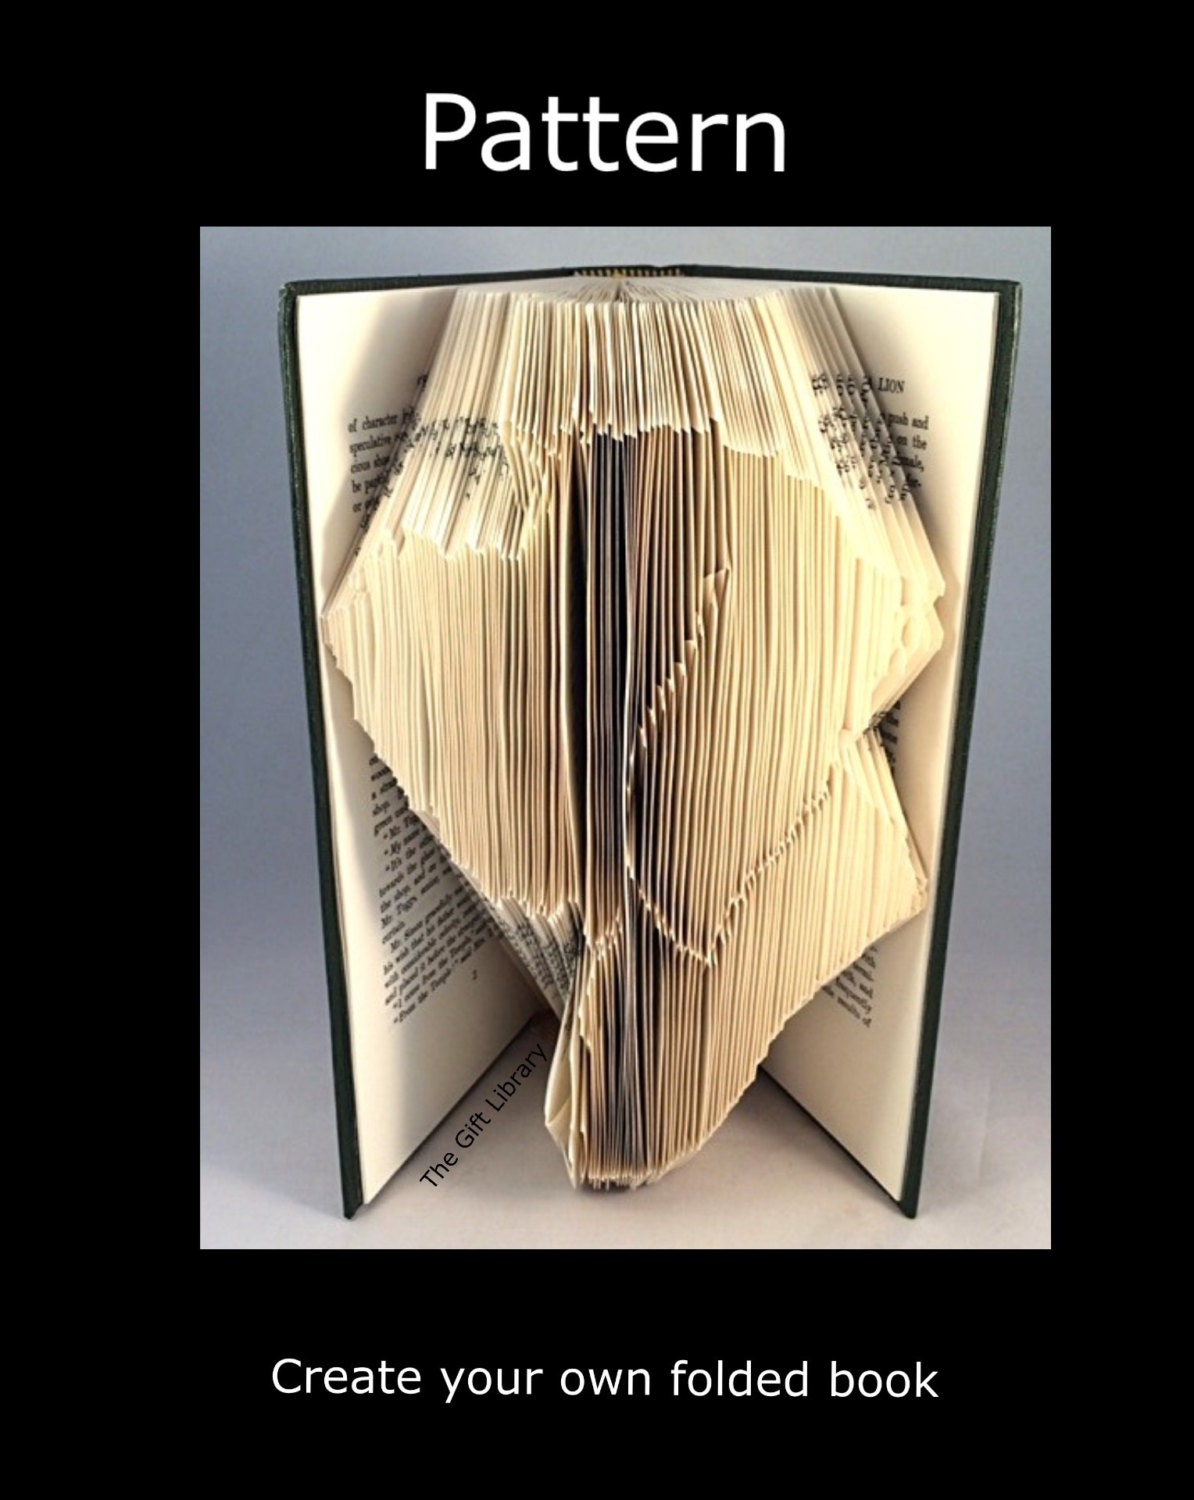 Folded book art pattern dog head pattern to create your own Dog clothes design your own